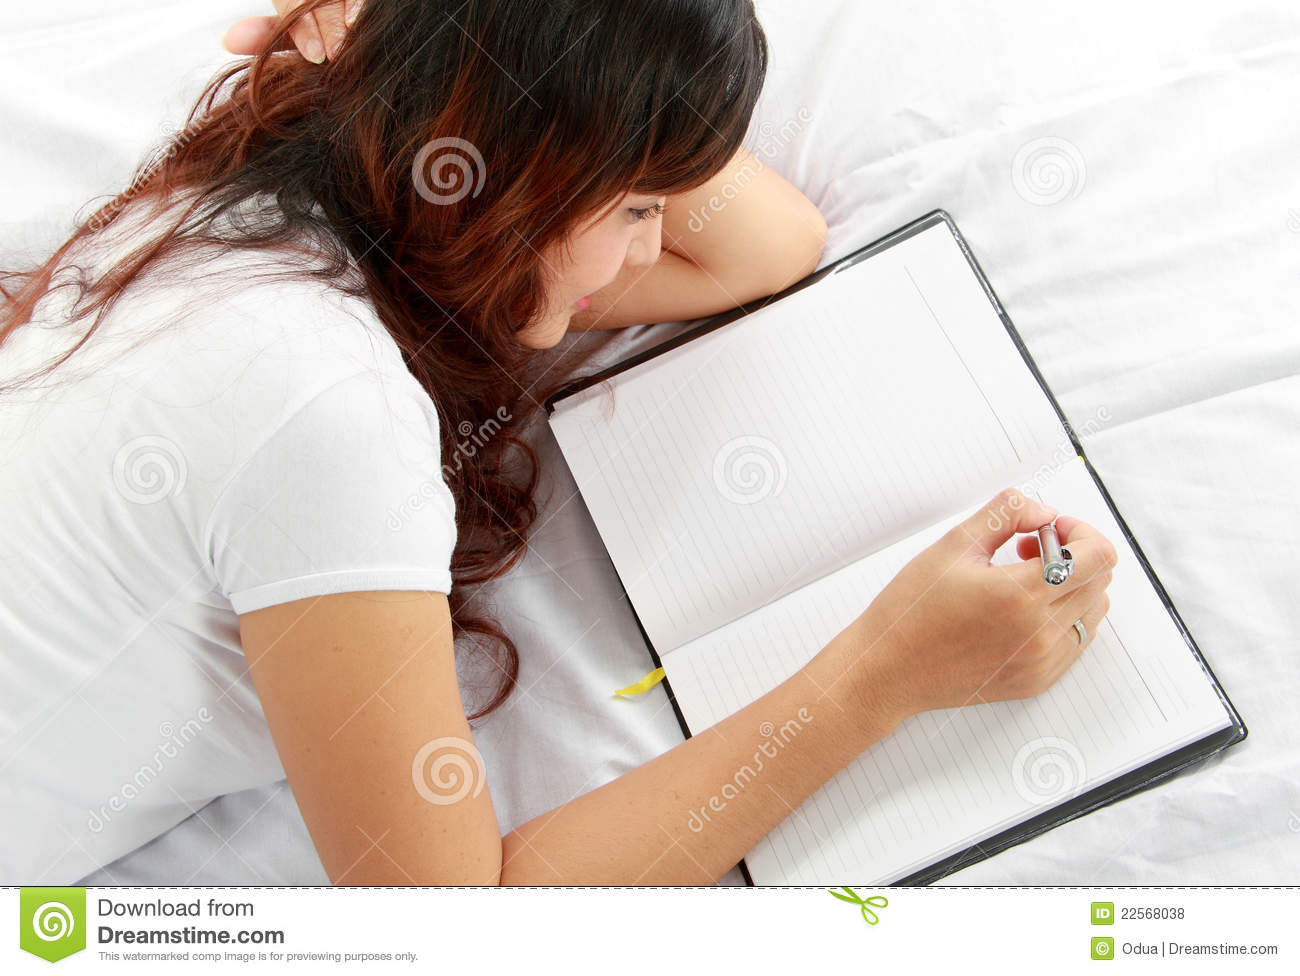 How To Be More Confident In Bed Girl Writing Book On The Bed Stock Photo Image Of